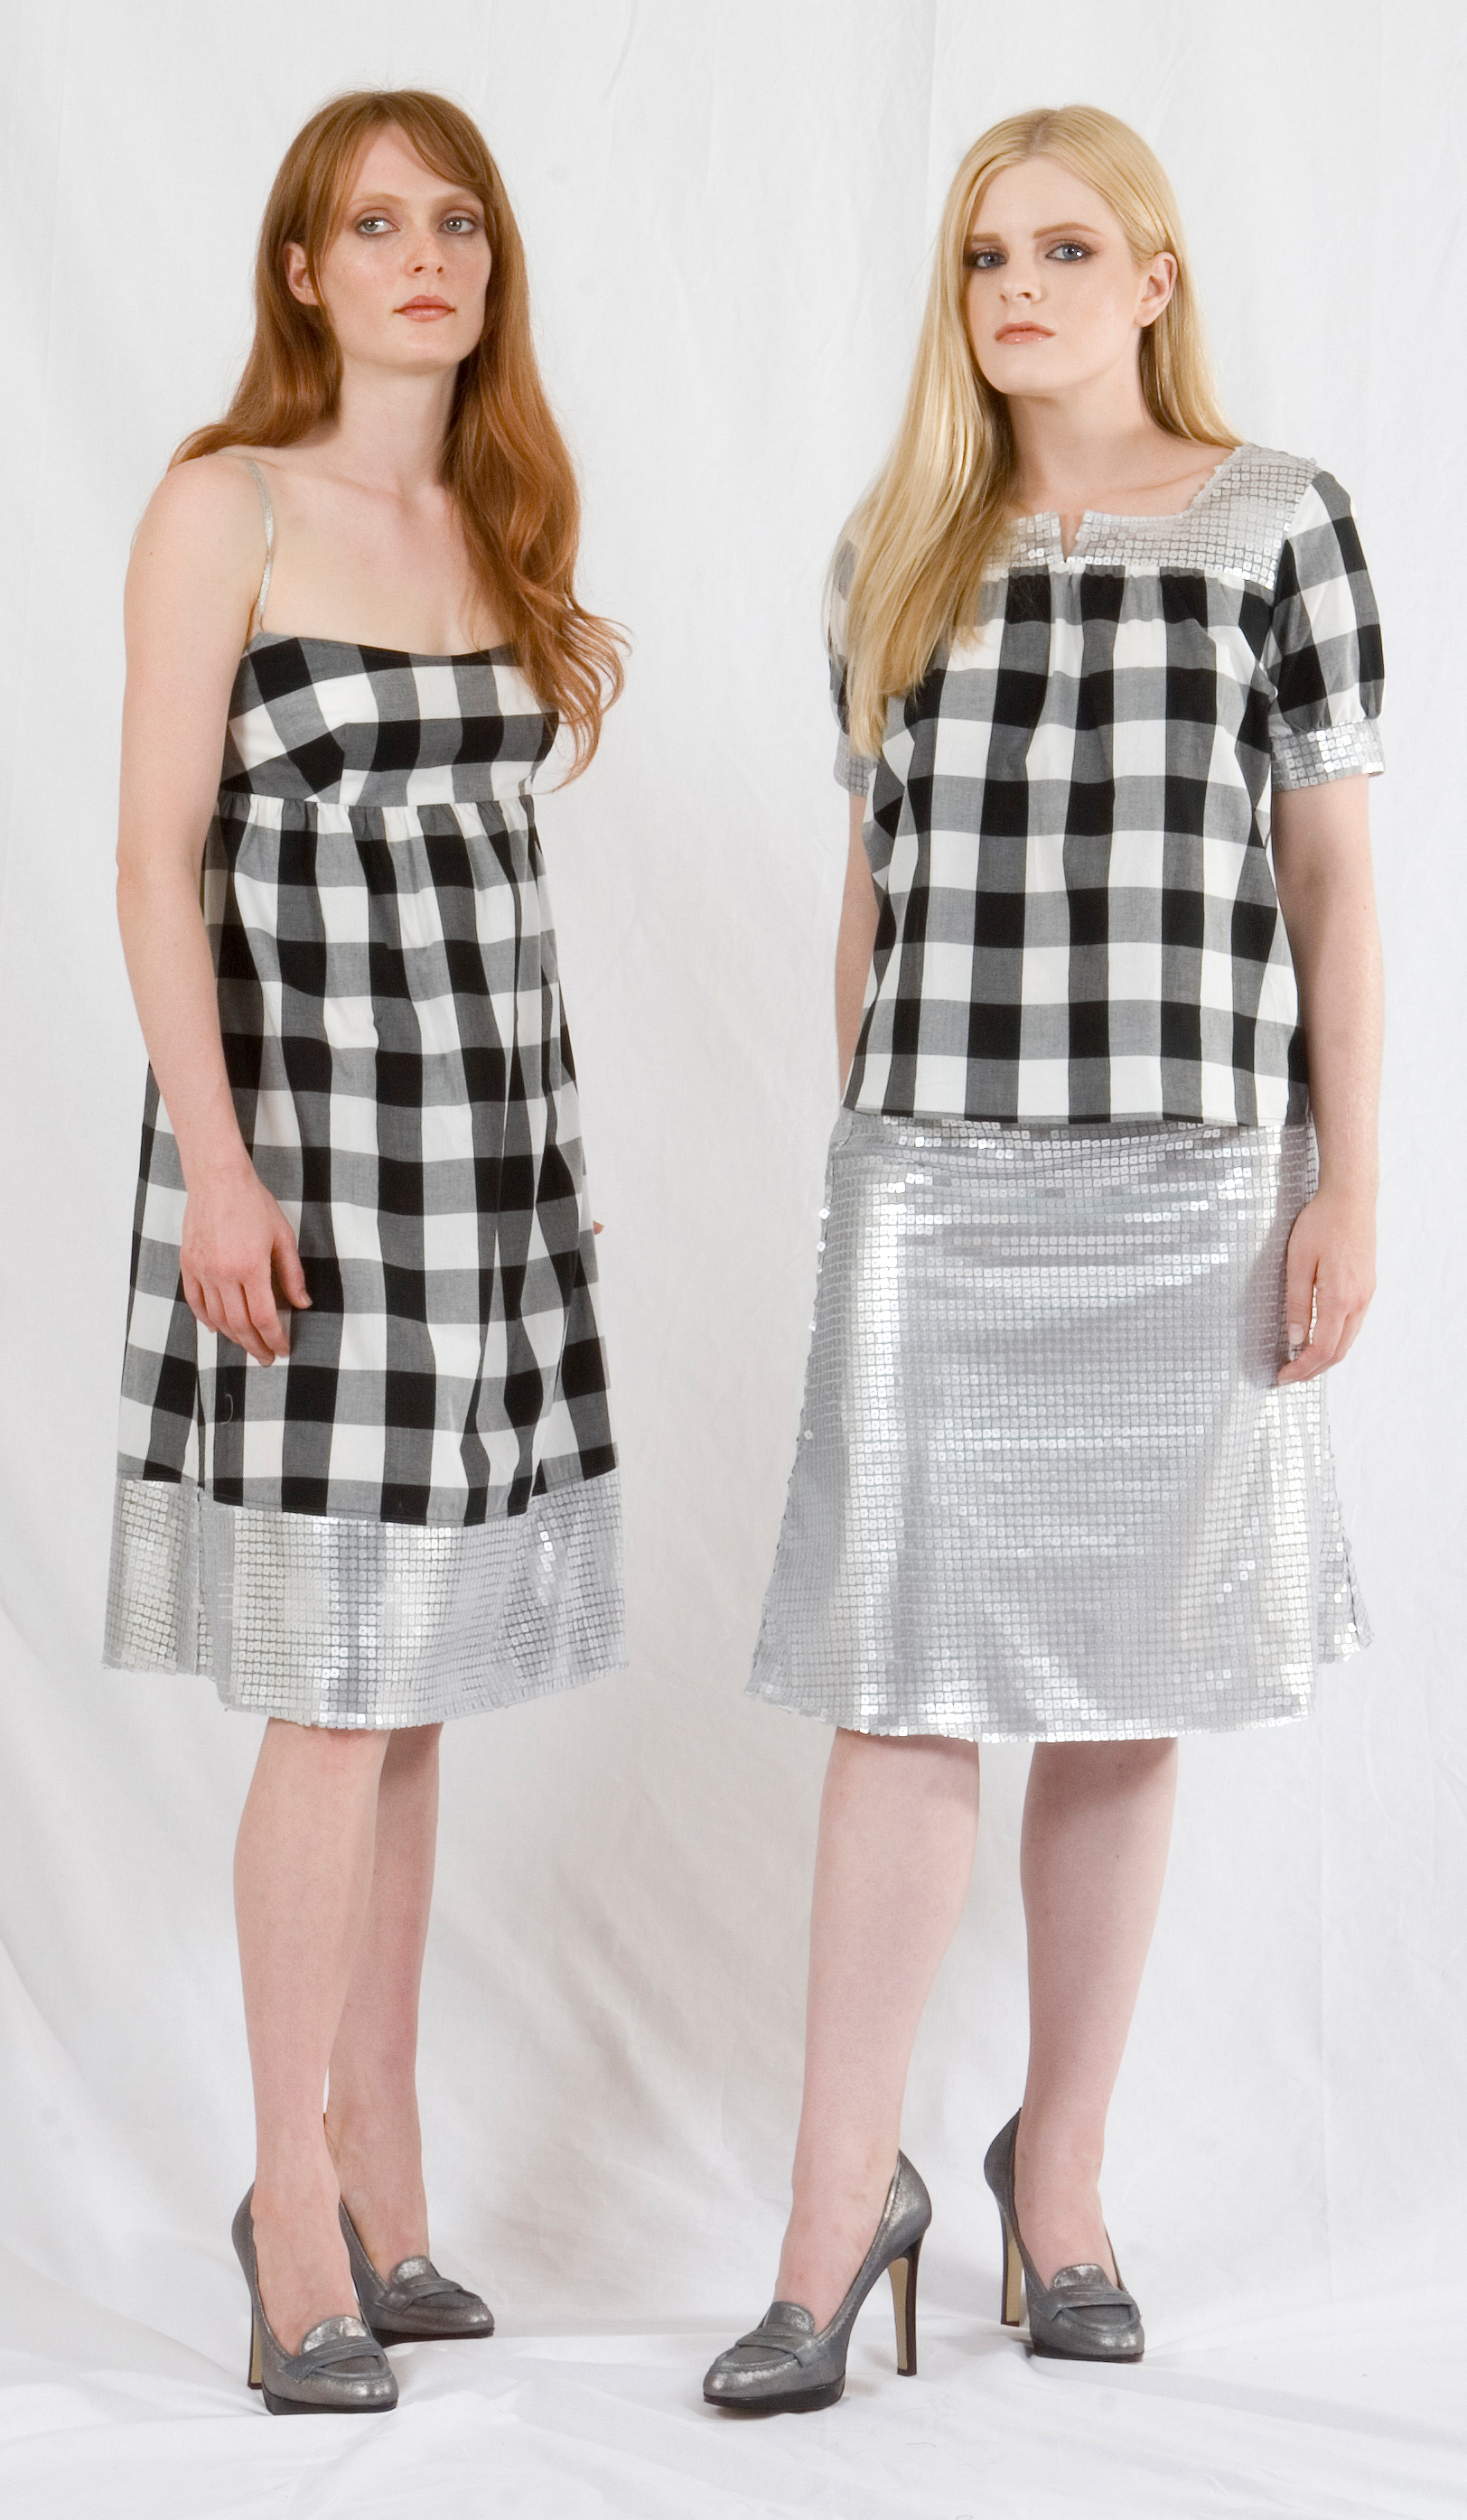 Cami Dress in Cotton Gingham w/ silver Sequined Hem & Metallic Straps.   On right:   Cotton Gingham w/ Silver Sequined & Yoke & Sleeve Band.   A-Line Skirt in Silver Sequined Tulle.